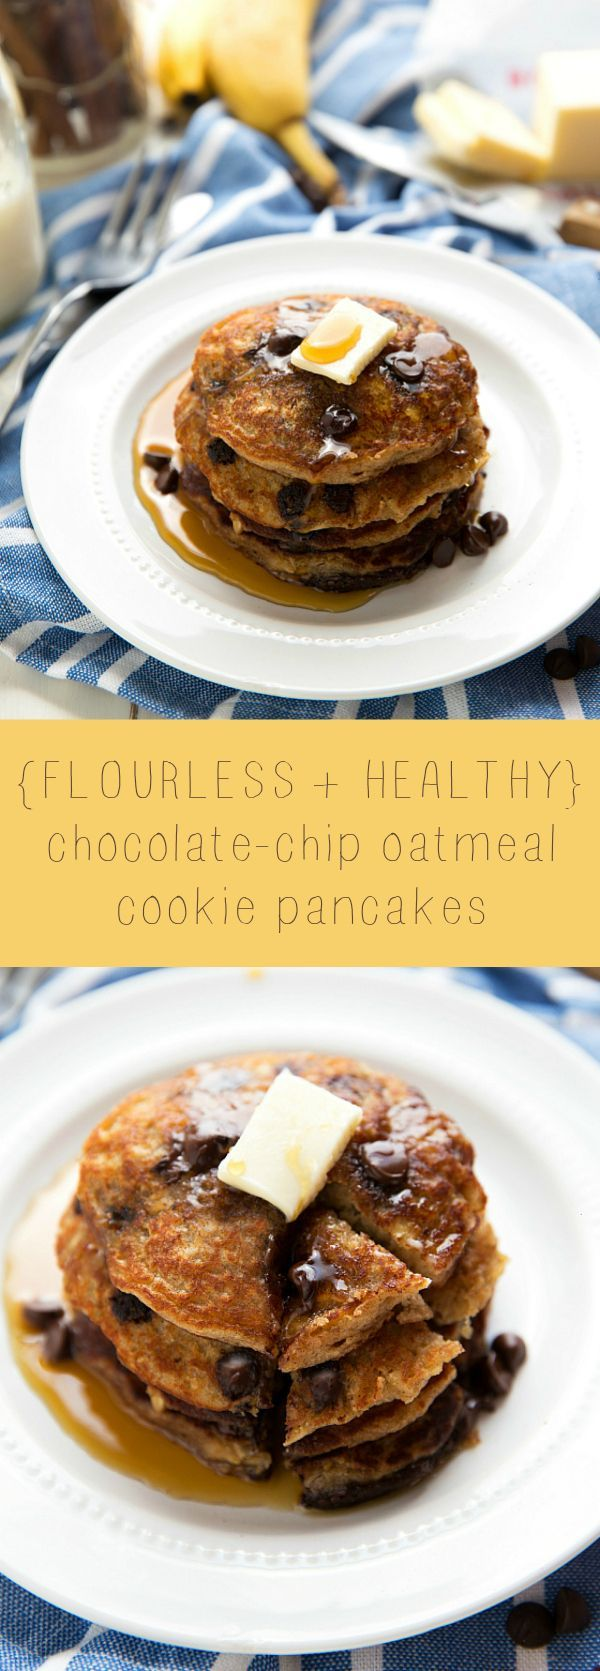 ... oats, these healthy and flourless pancakes are good for you and great